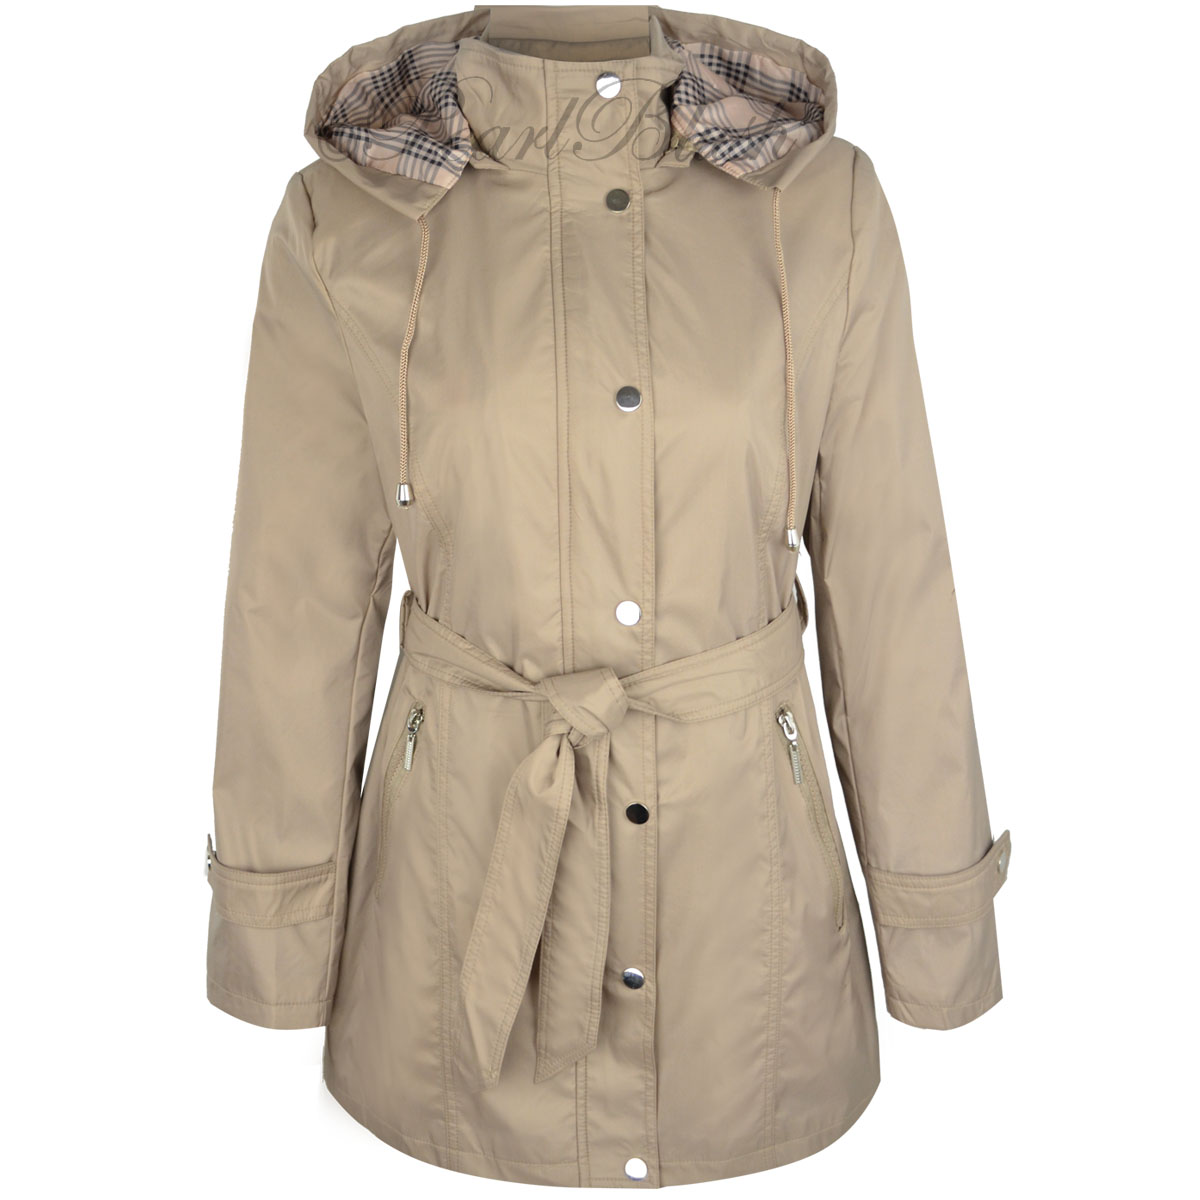 Find a great selection of raincoats for women at fefdinterested.gq Shop by feature, length, and closure from brands like The North Face, Cole Haan, Pendleton & more. Check out our entire collection. Free shipping & returns.